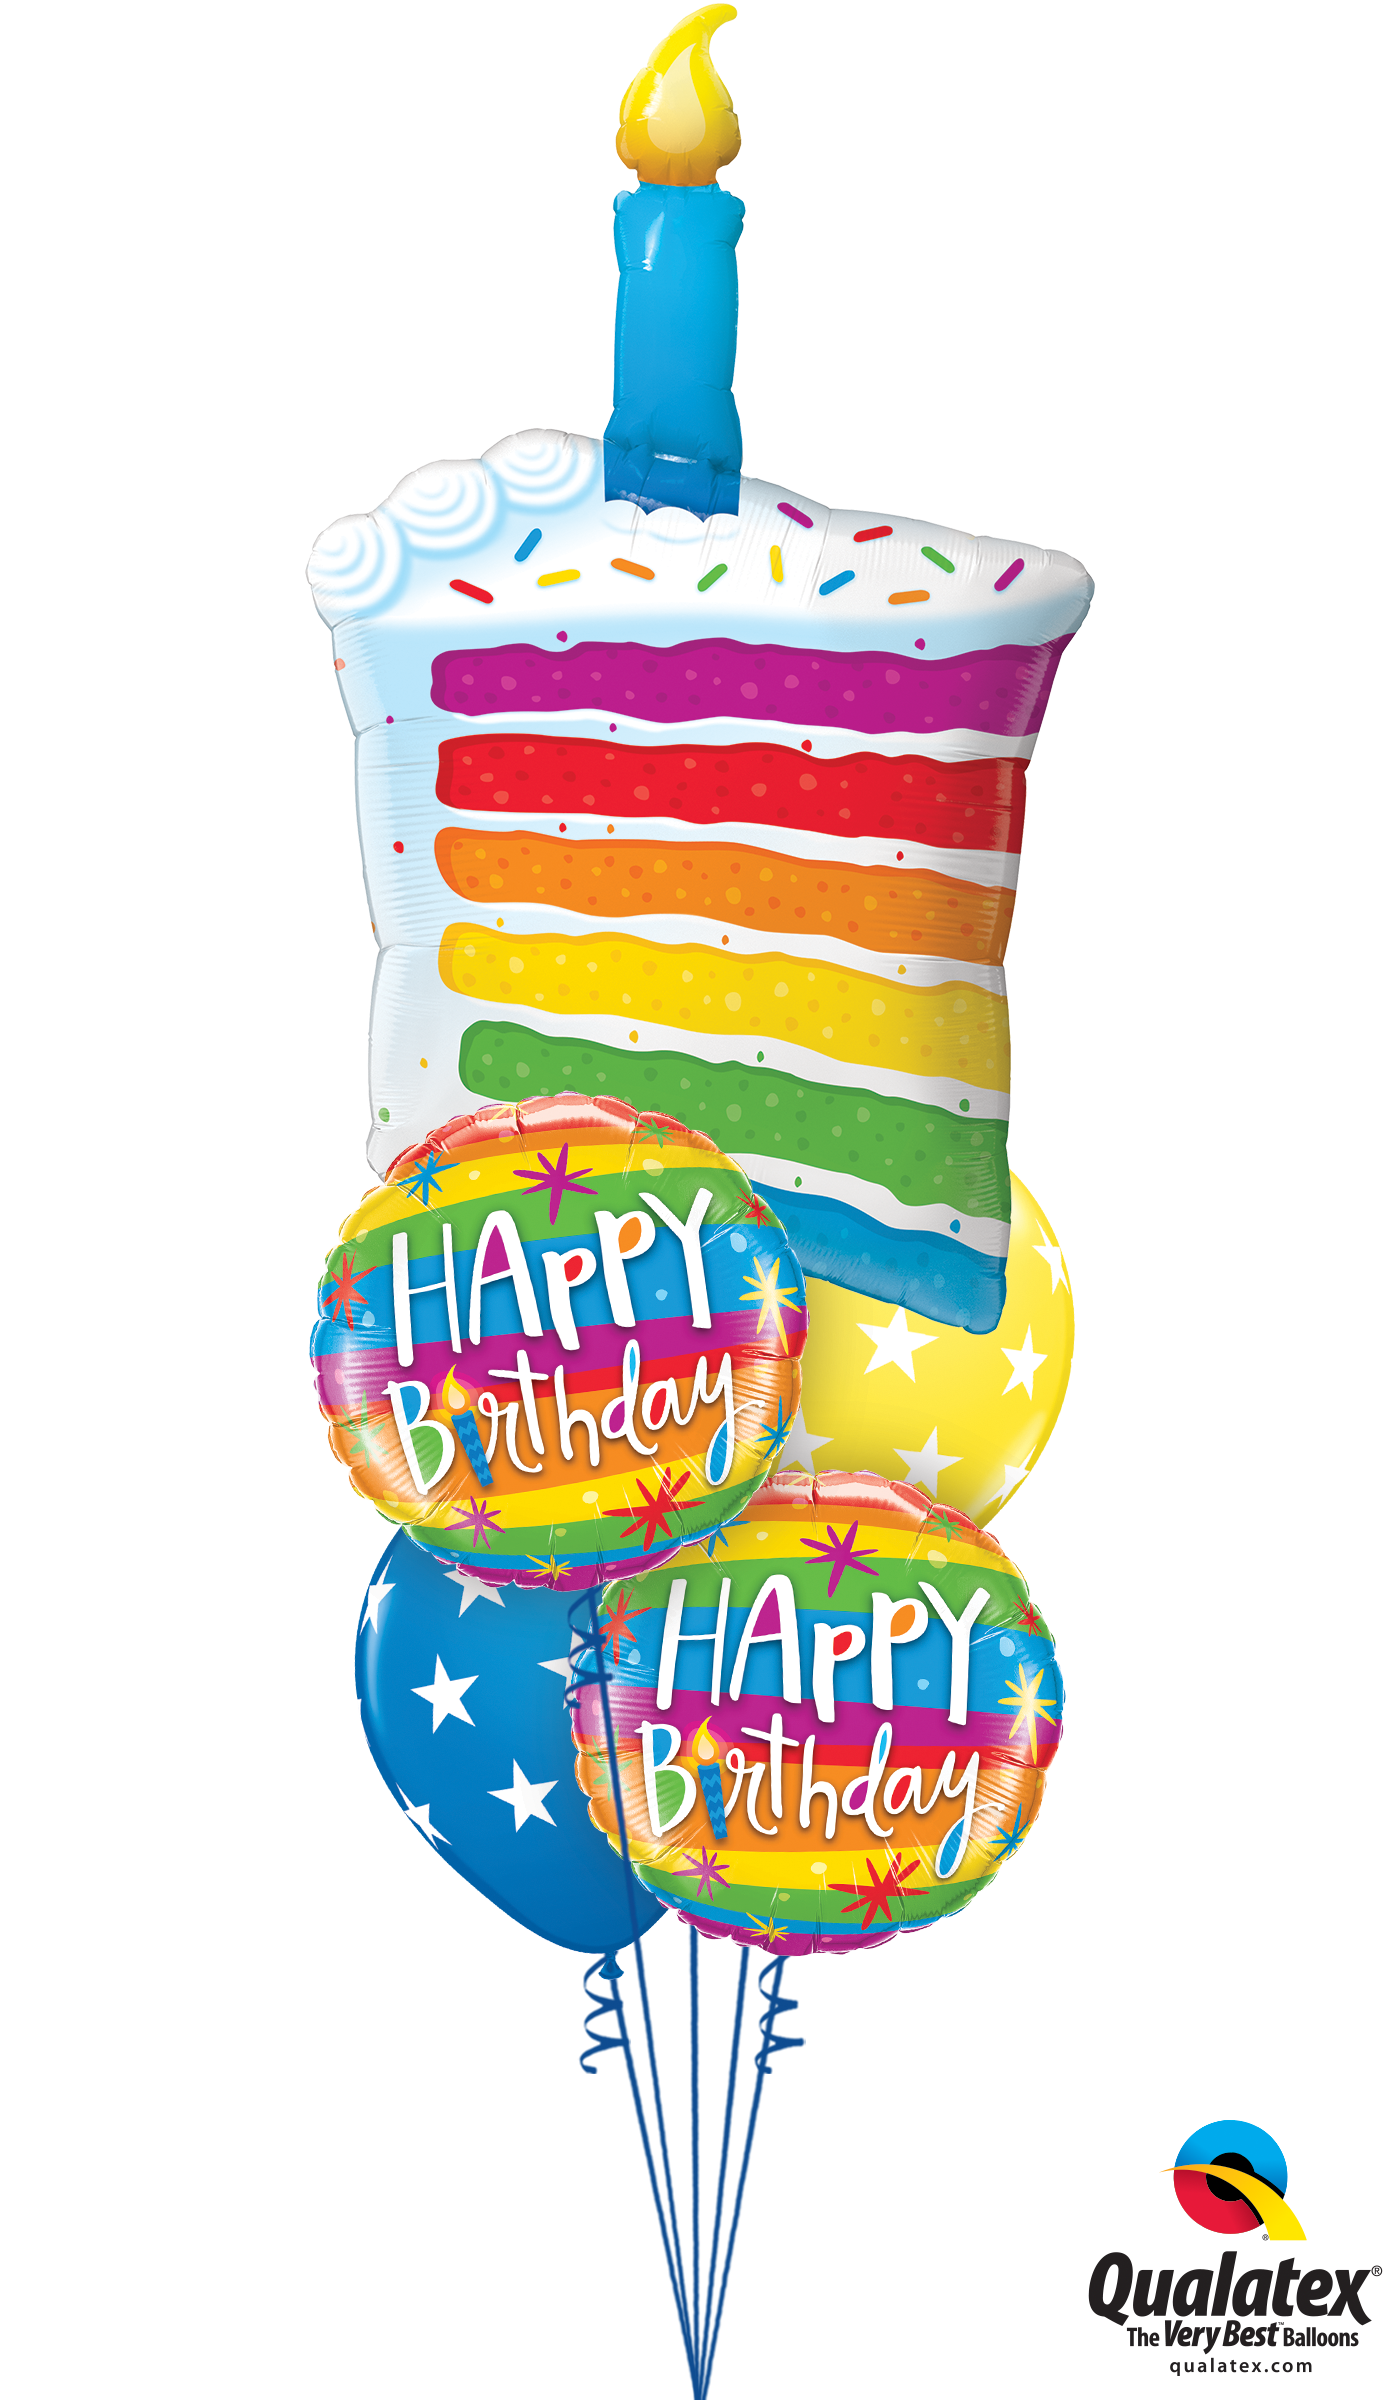 Get Rainbow Cake Candle Helium Balloons Delivered To Your Choice Of Venue